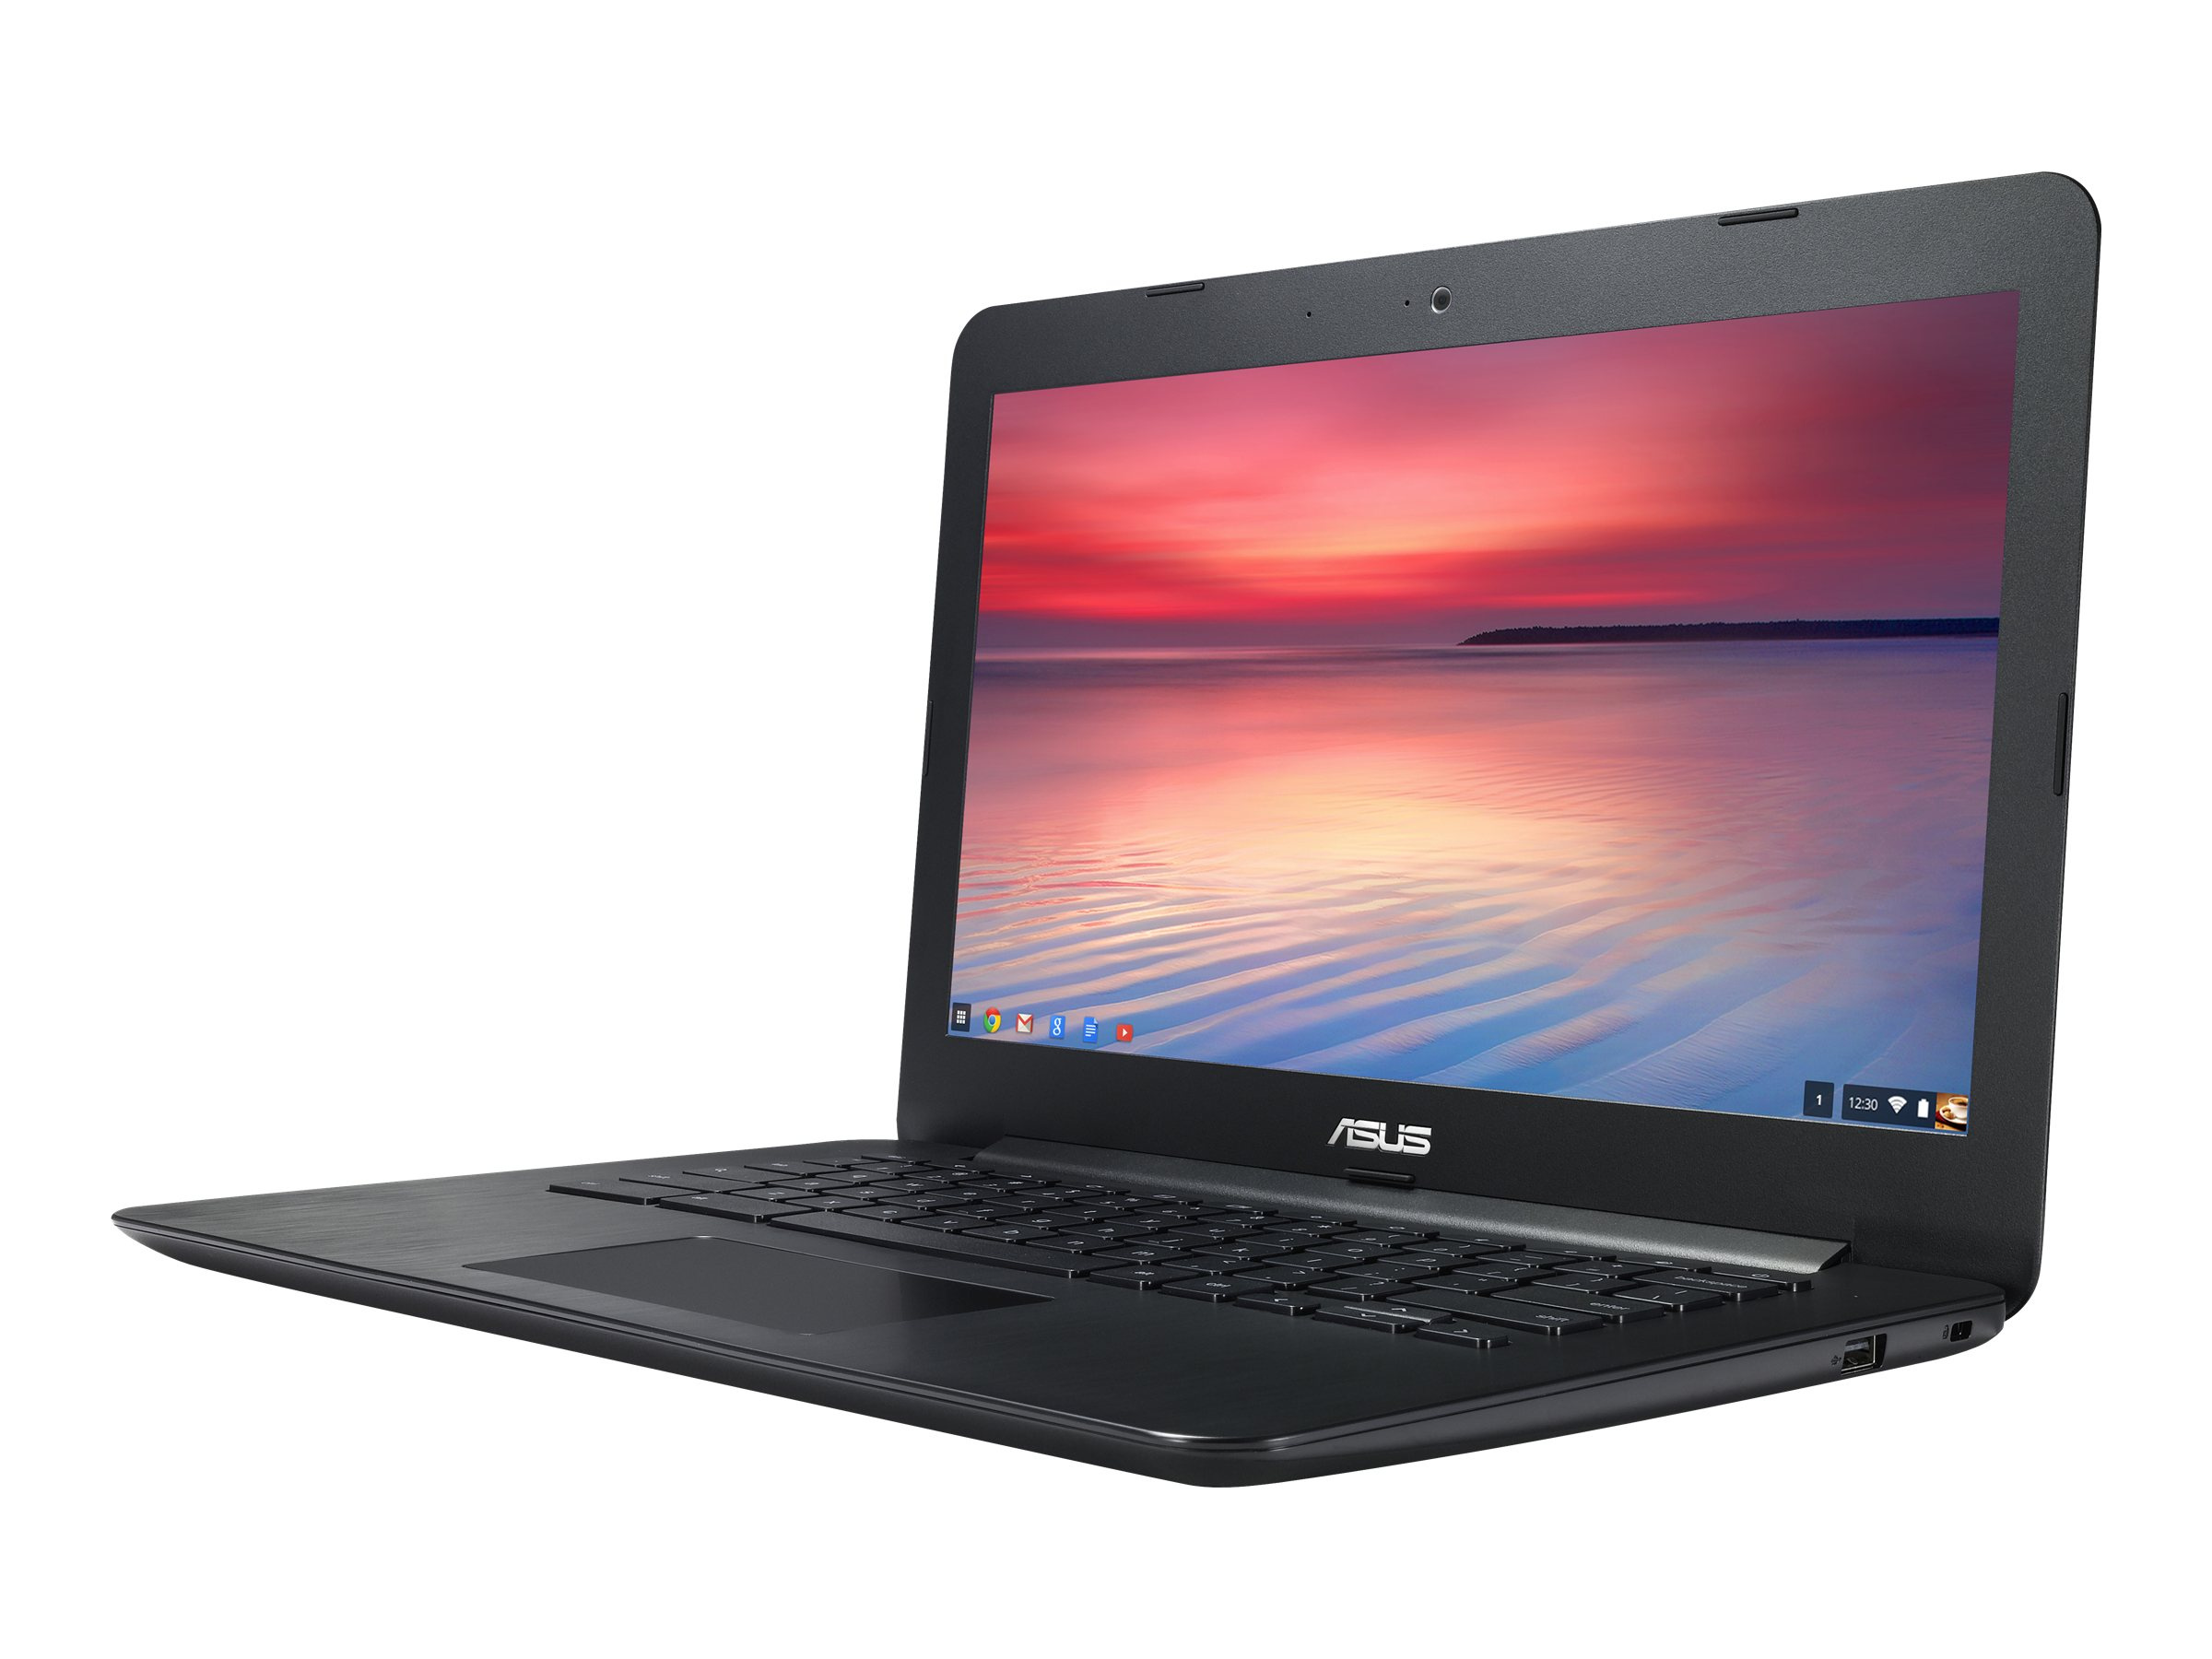 Asus C300MA-DH02 Celeron N2830 2.16GHz 4GB 16GB ac BT WC 3C 13.3 HD Chrome OS, 90NB05W1-M00600, 18019818, Notebooks